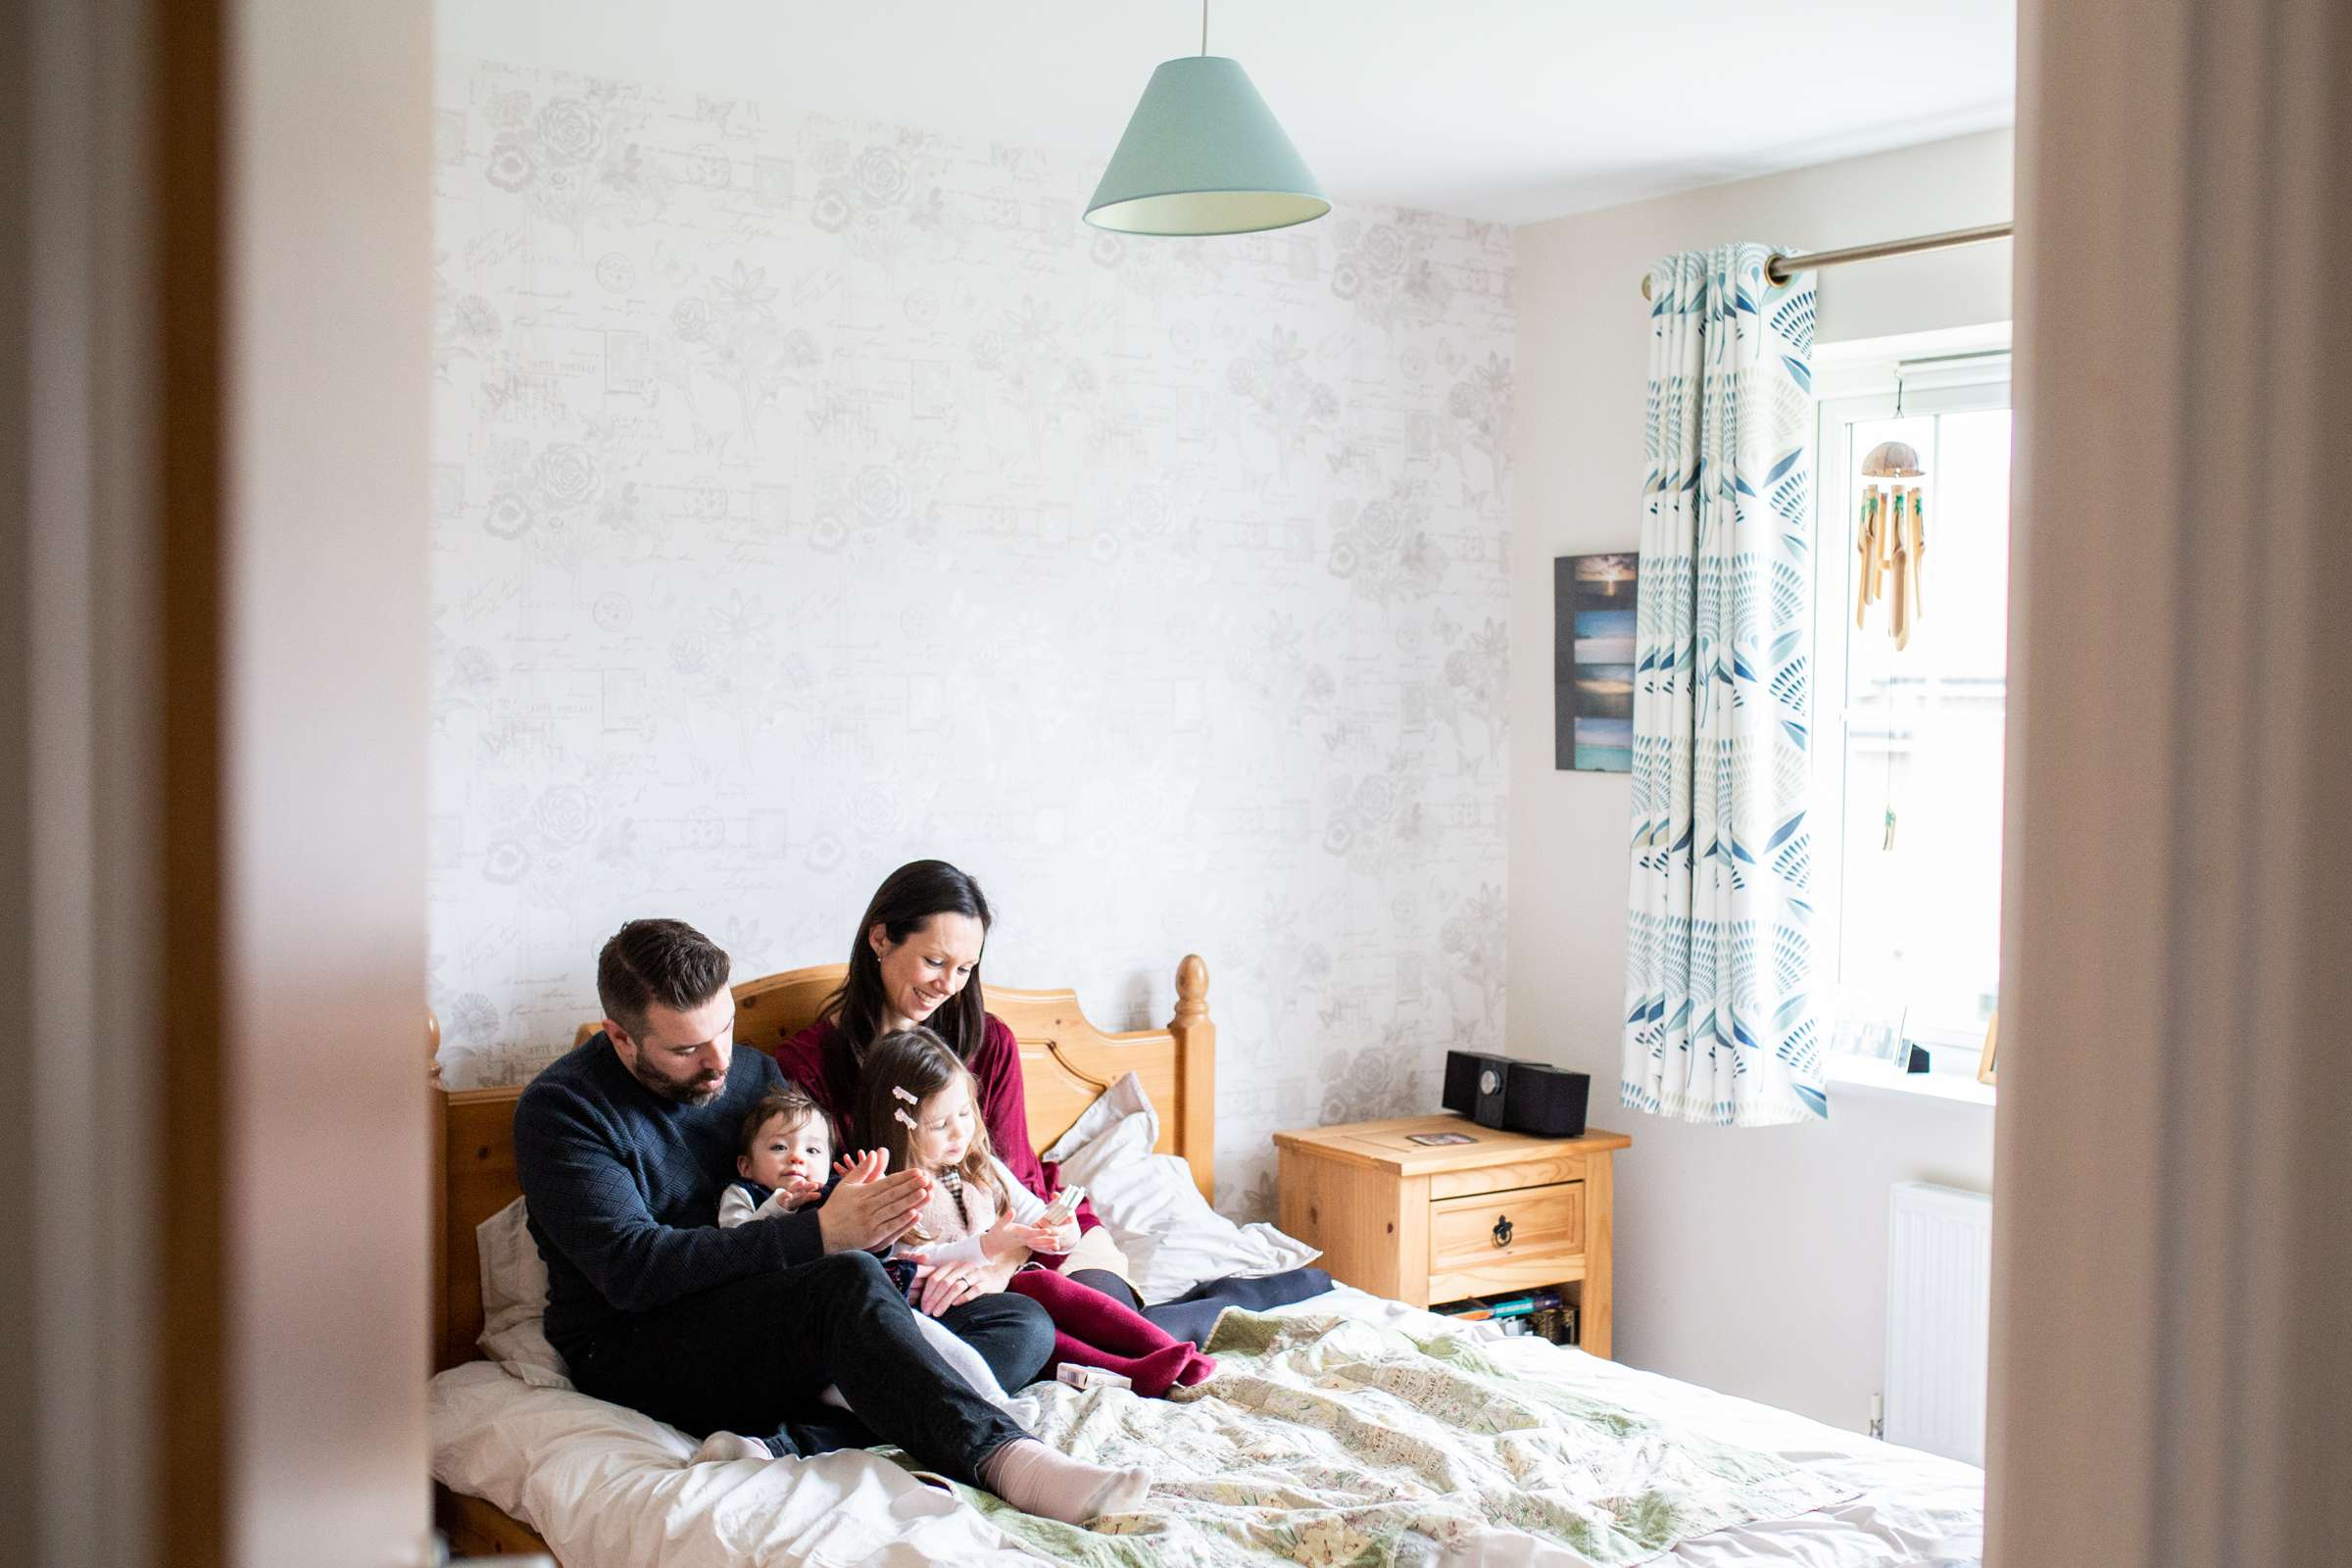 An indoor portrait photo of a family with two small children cuddling on the bed